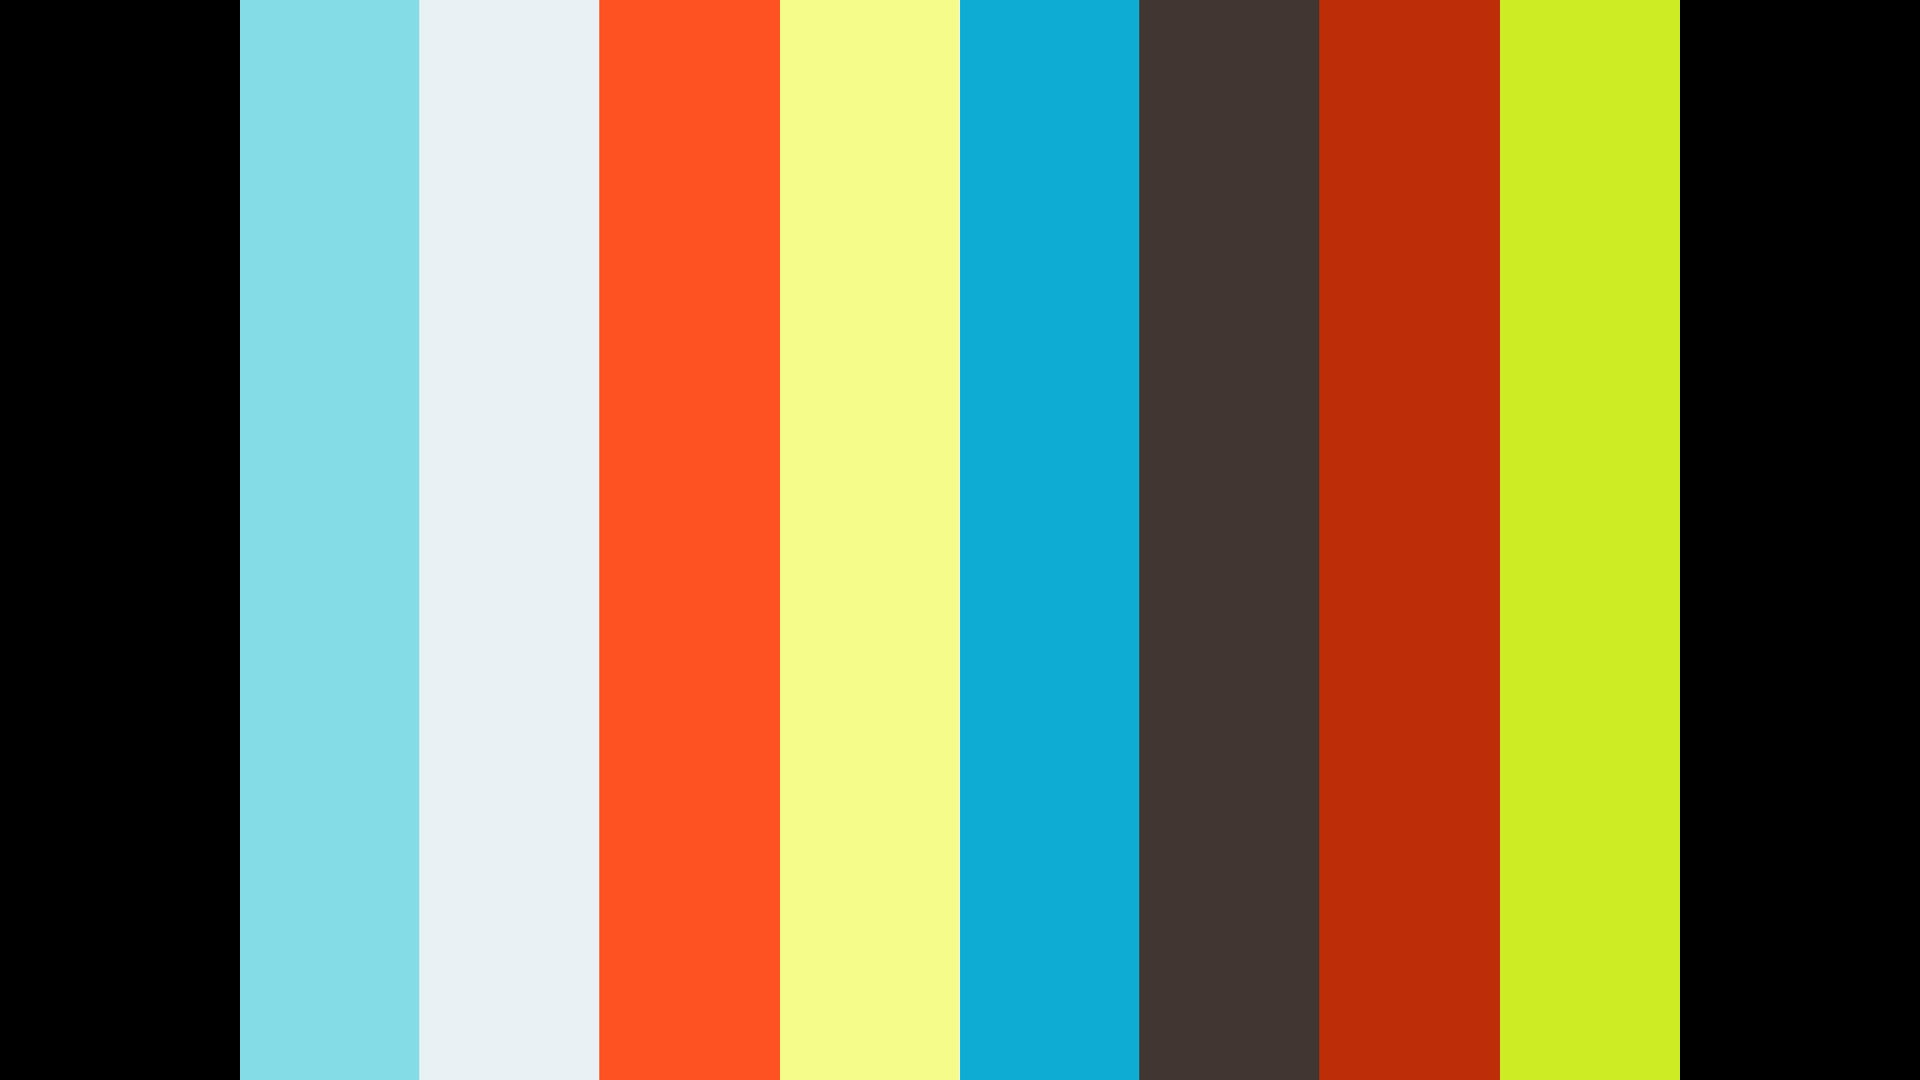 Black Friday - The Short Film